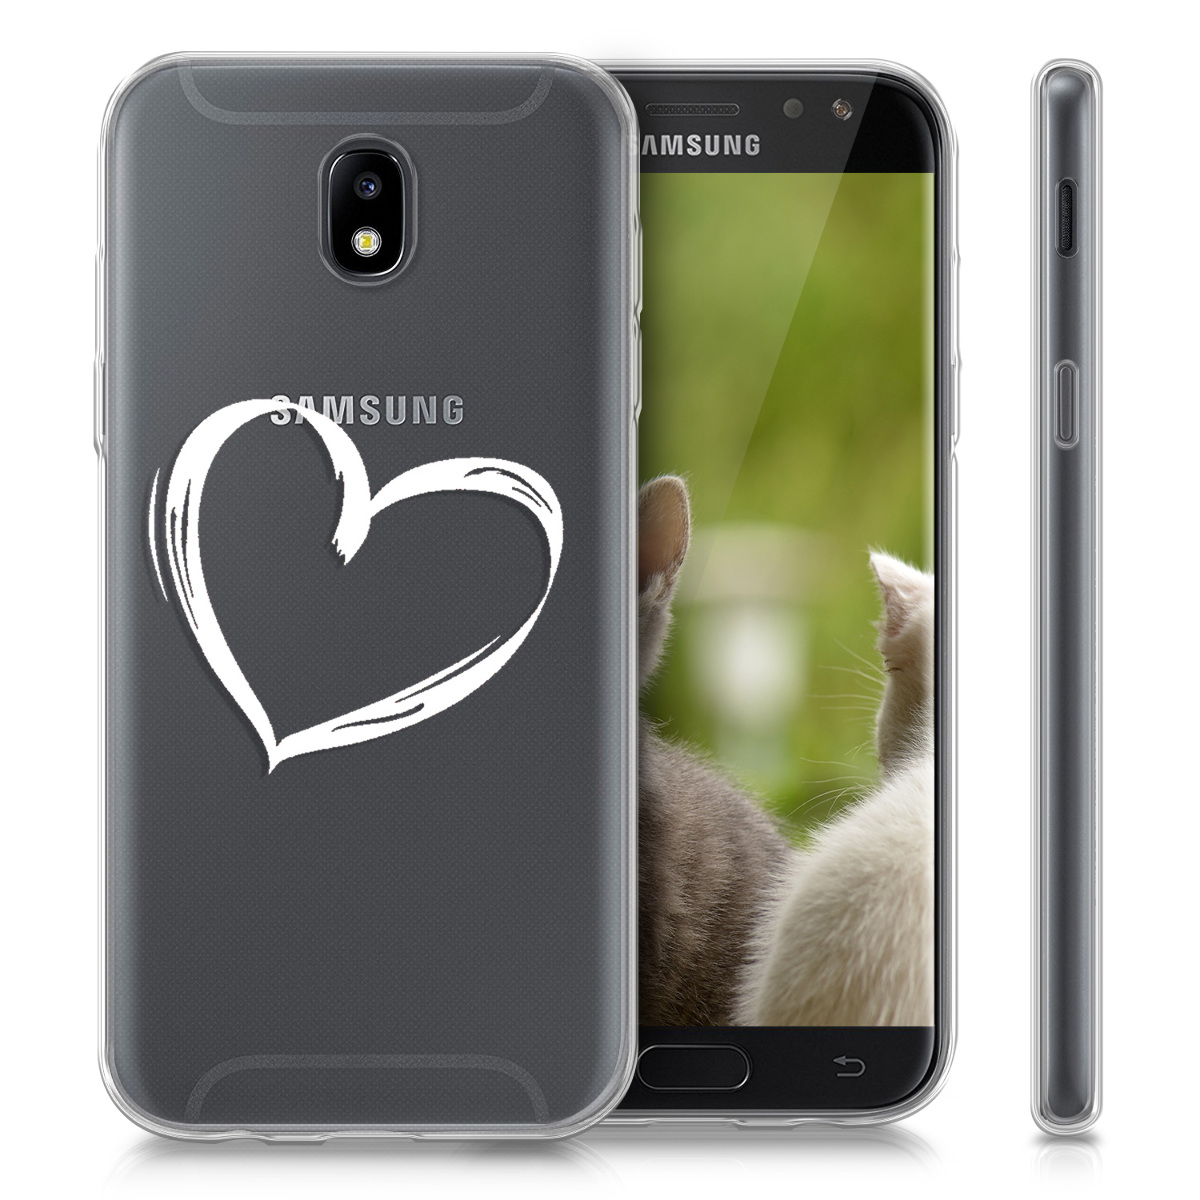 HOUSSE-DE-PROTECTION-POUR-SAMSUNG-GALAXY-J5-2017-DUOS-TPU-SILICONE-ETUI